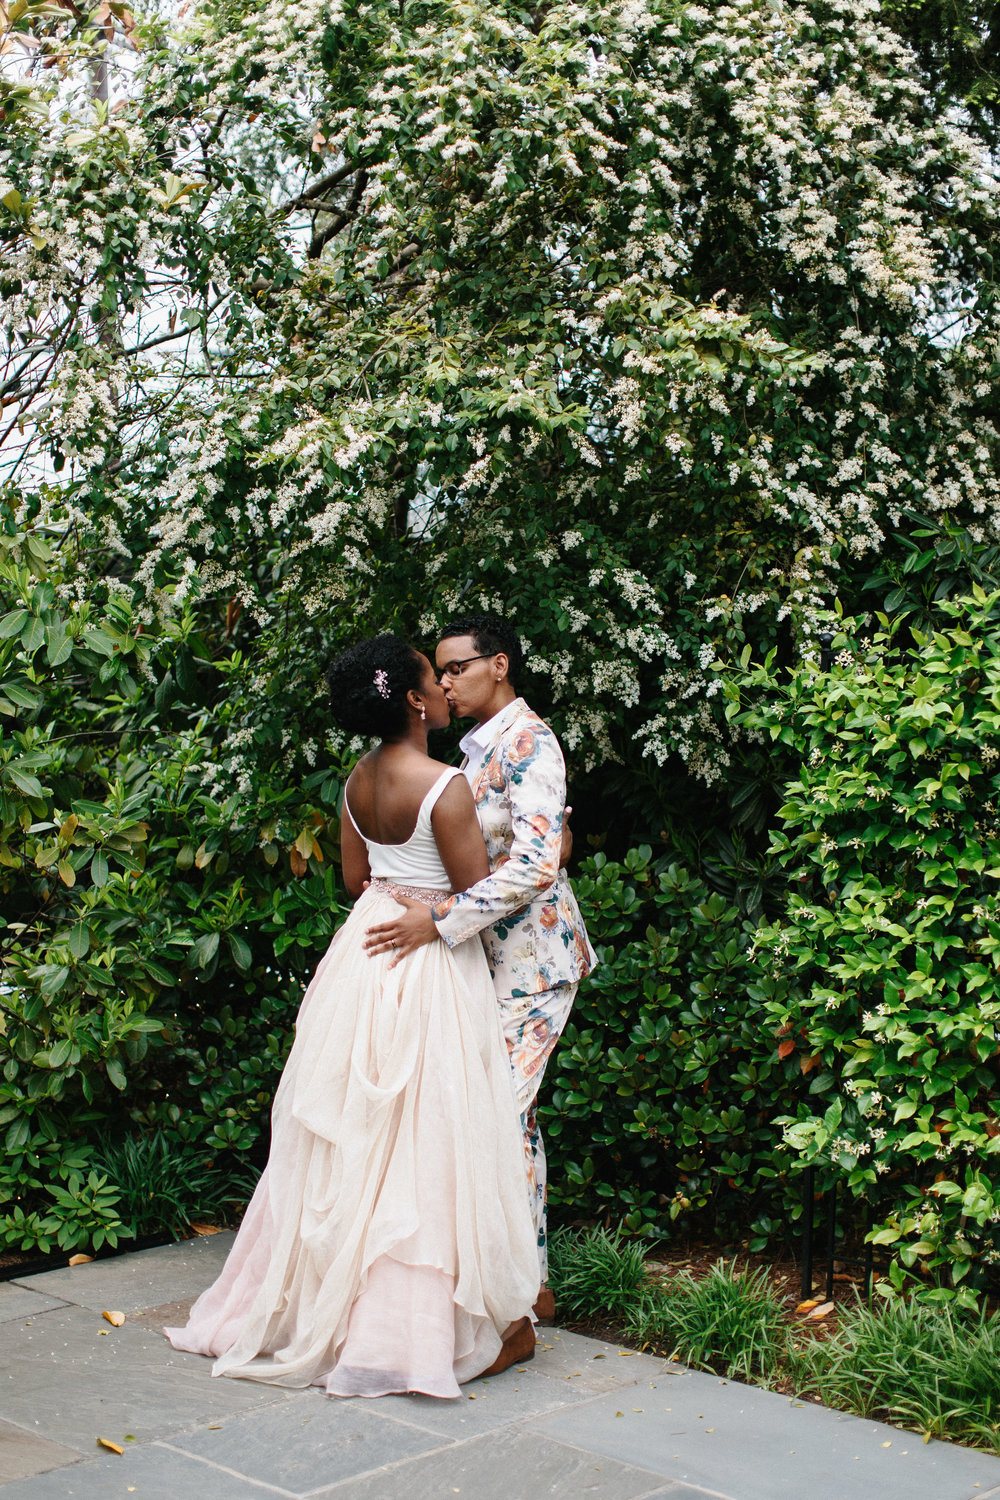 the_atrium_wedding_atlanta_norcross_lifestyle_photographers_lgbtq_1179.jpg